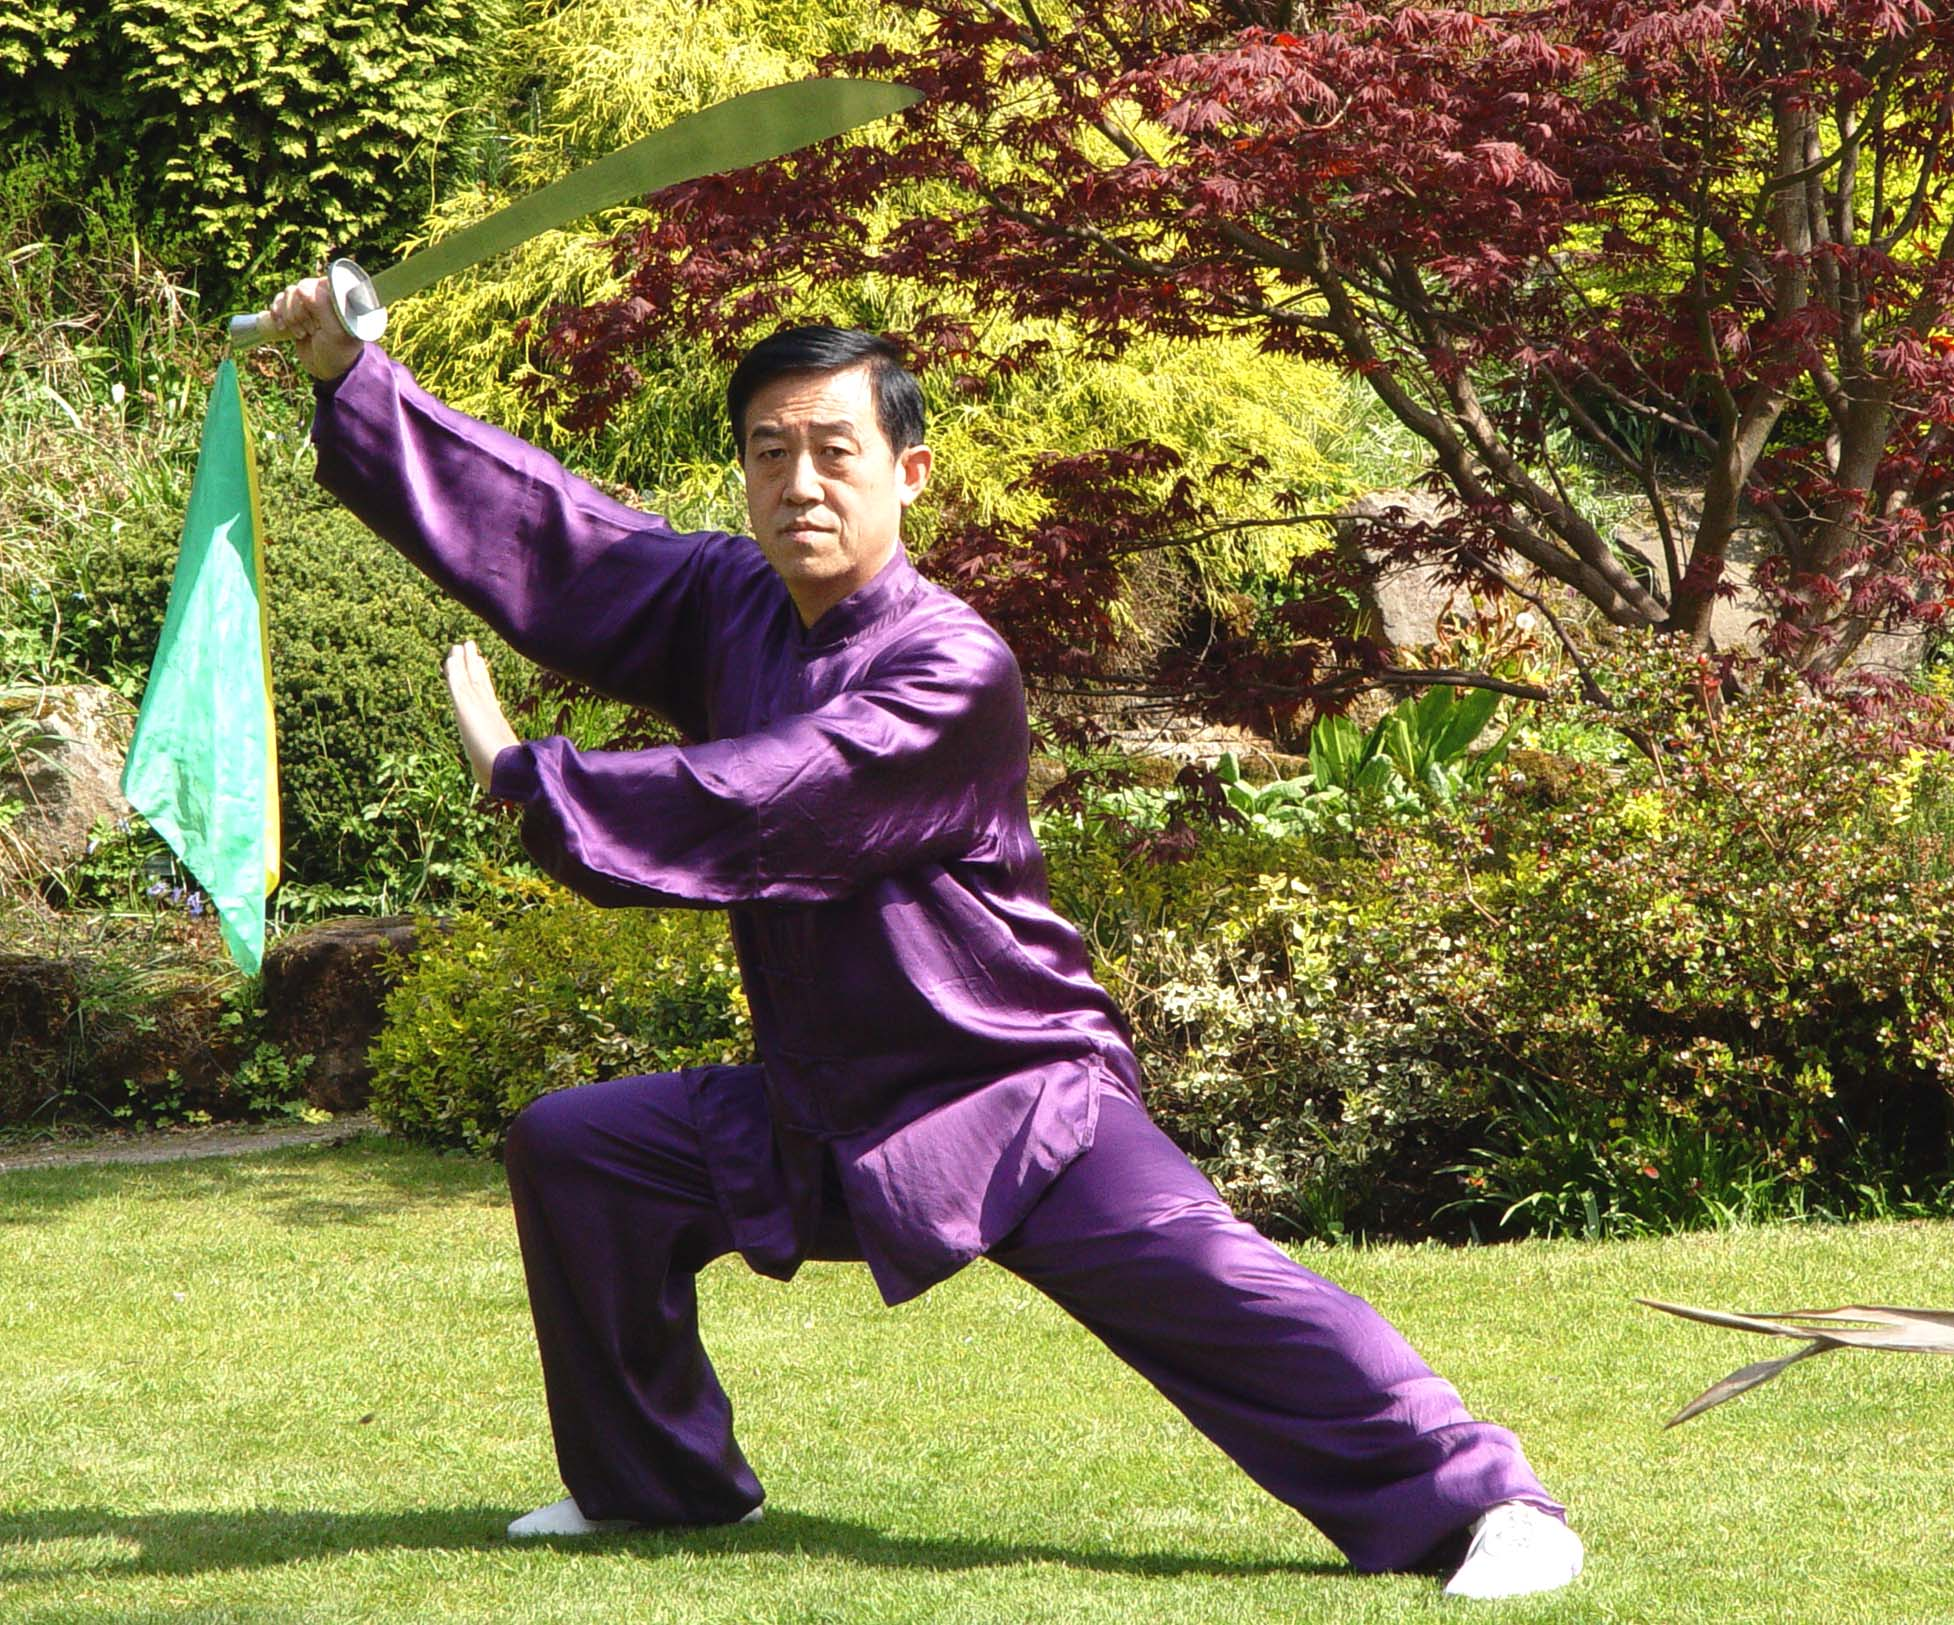 Great Grand Master of Chen-Taijiquan, Chen-Taiji Chen Zhenglei sable